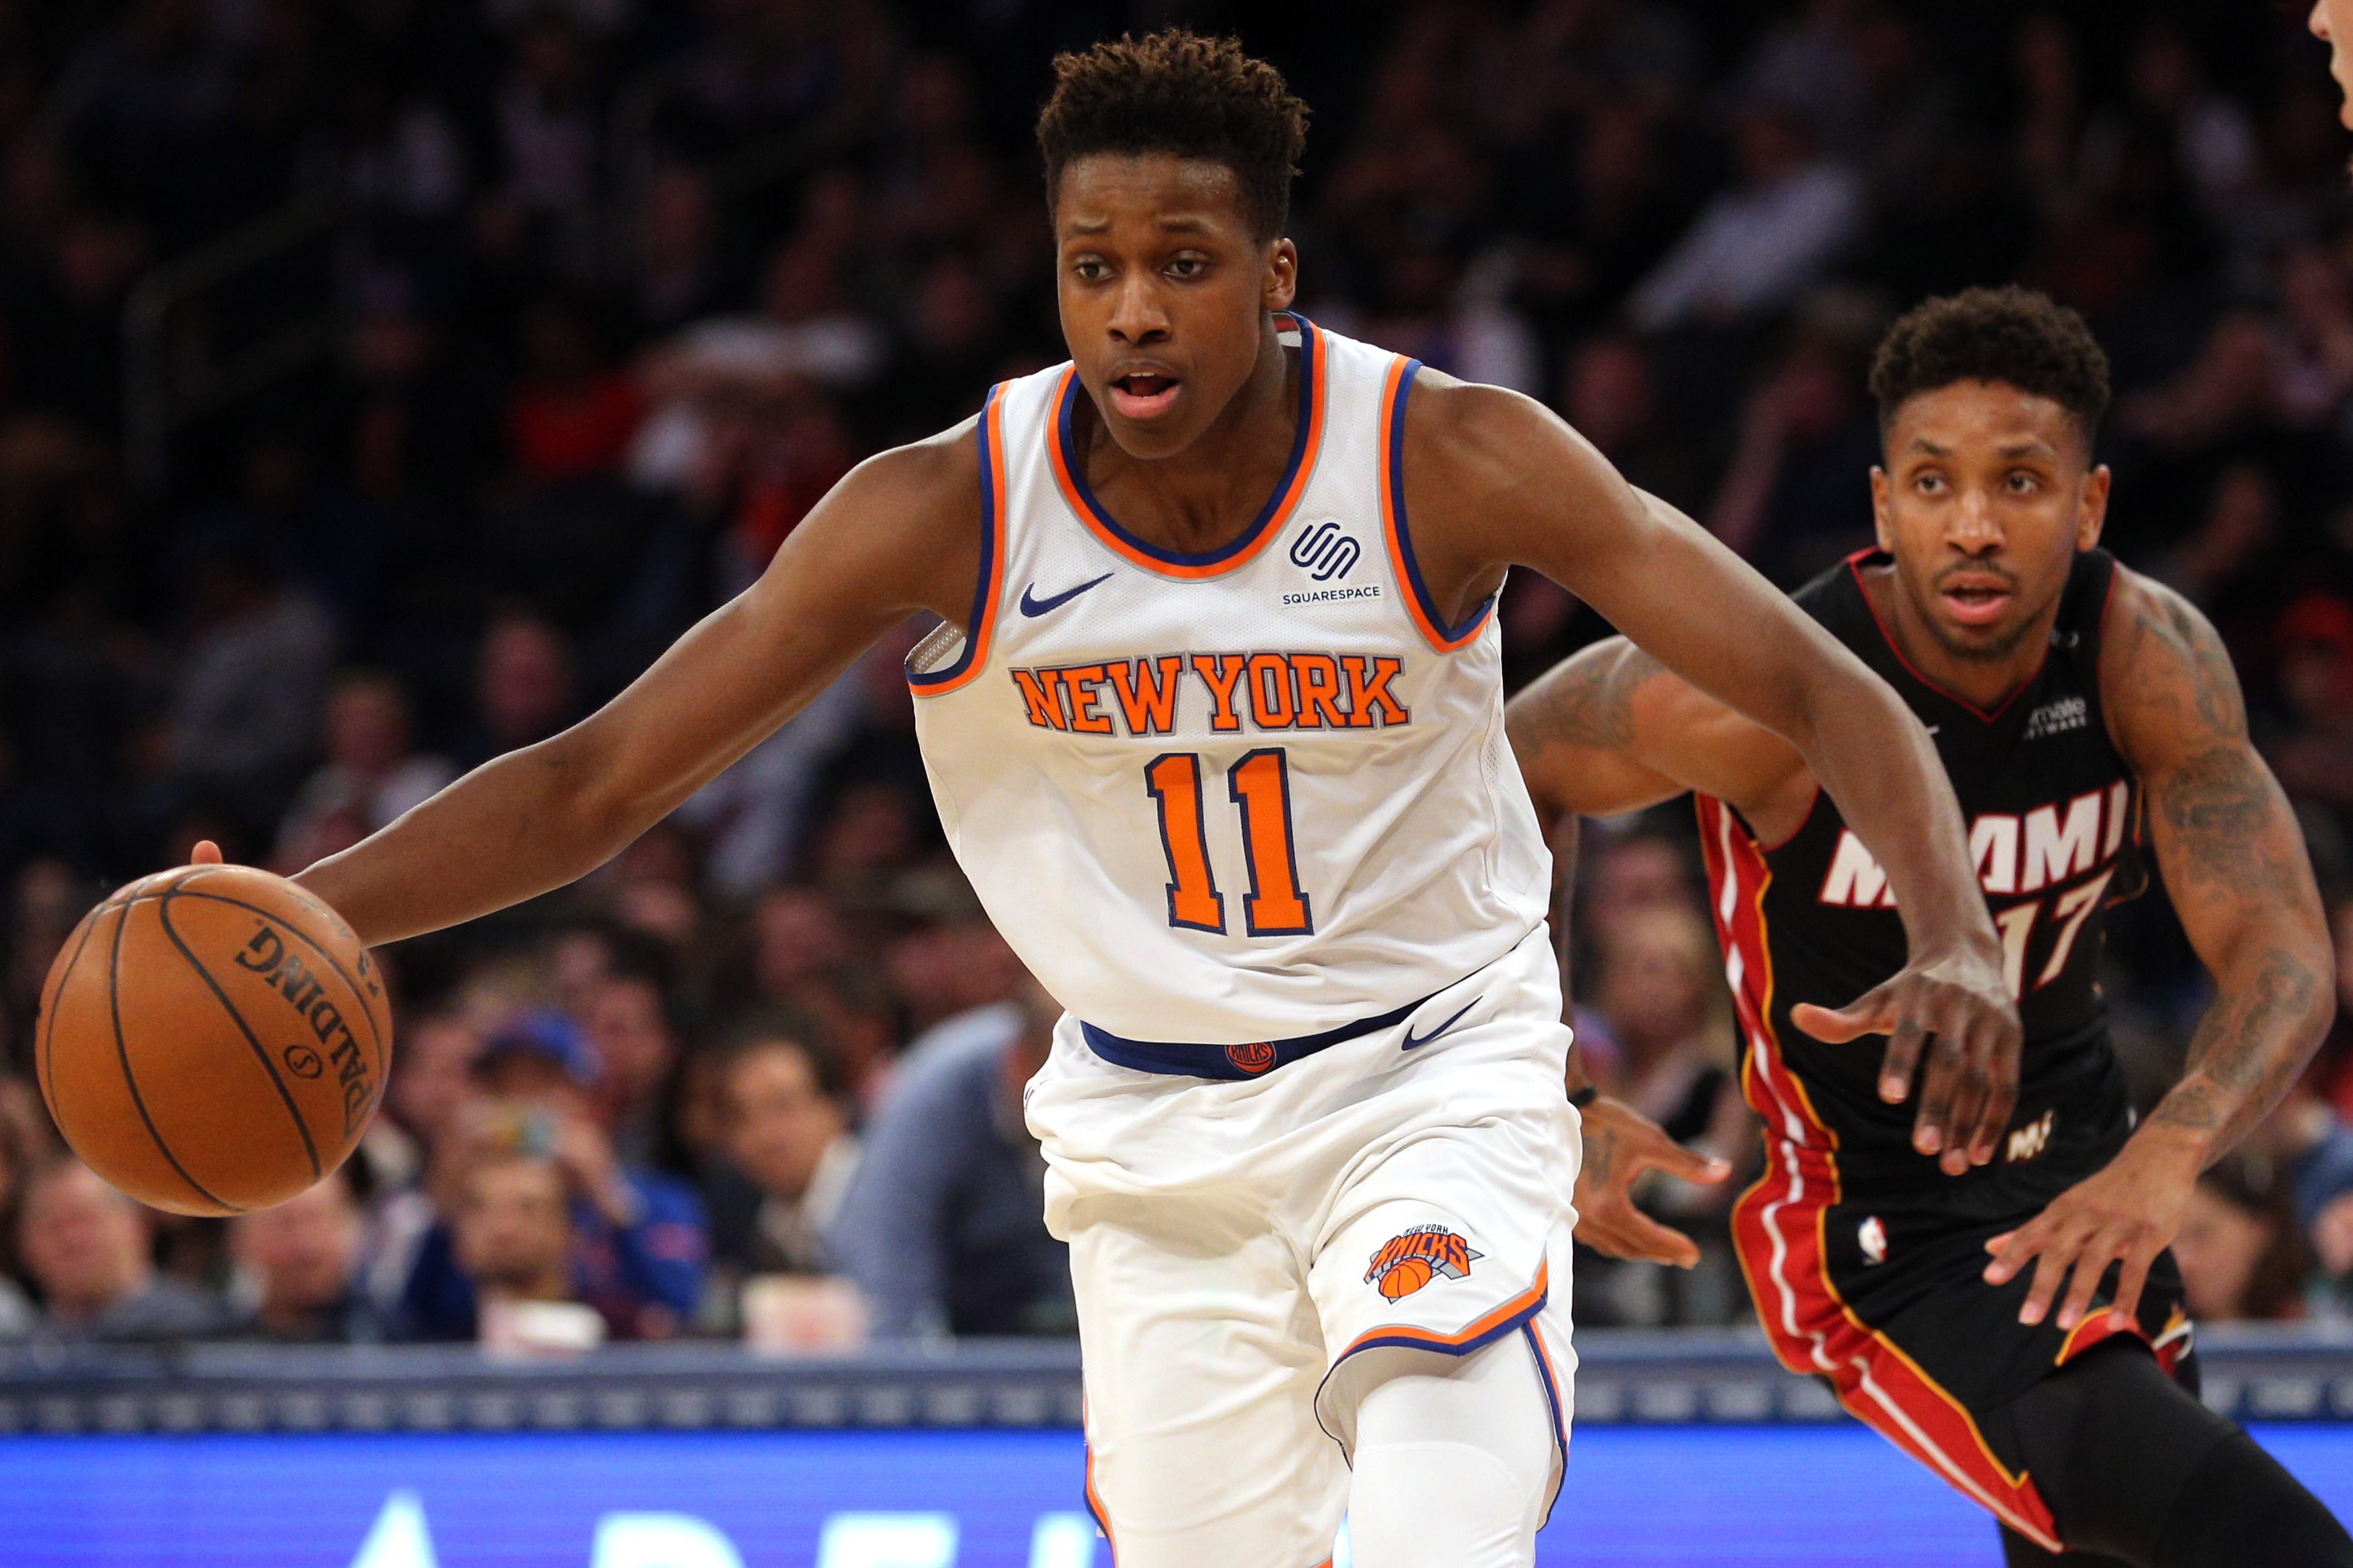 c2ce44a28 The Knicks Are Making A Dire Mistake With The Developing Of Frank Ntilikina